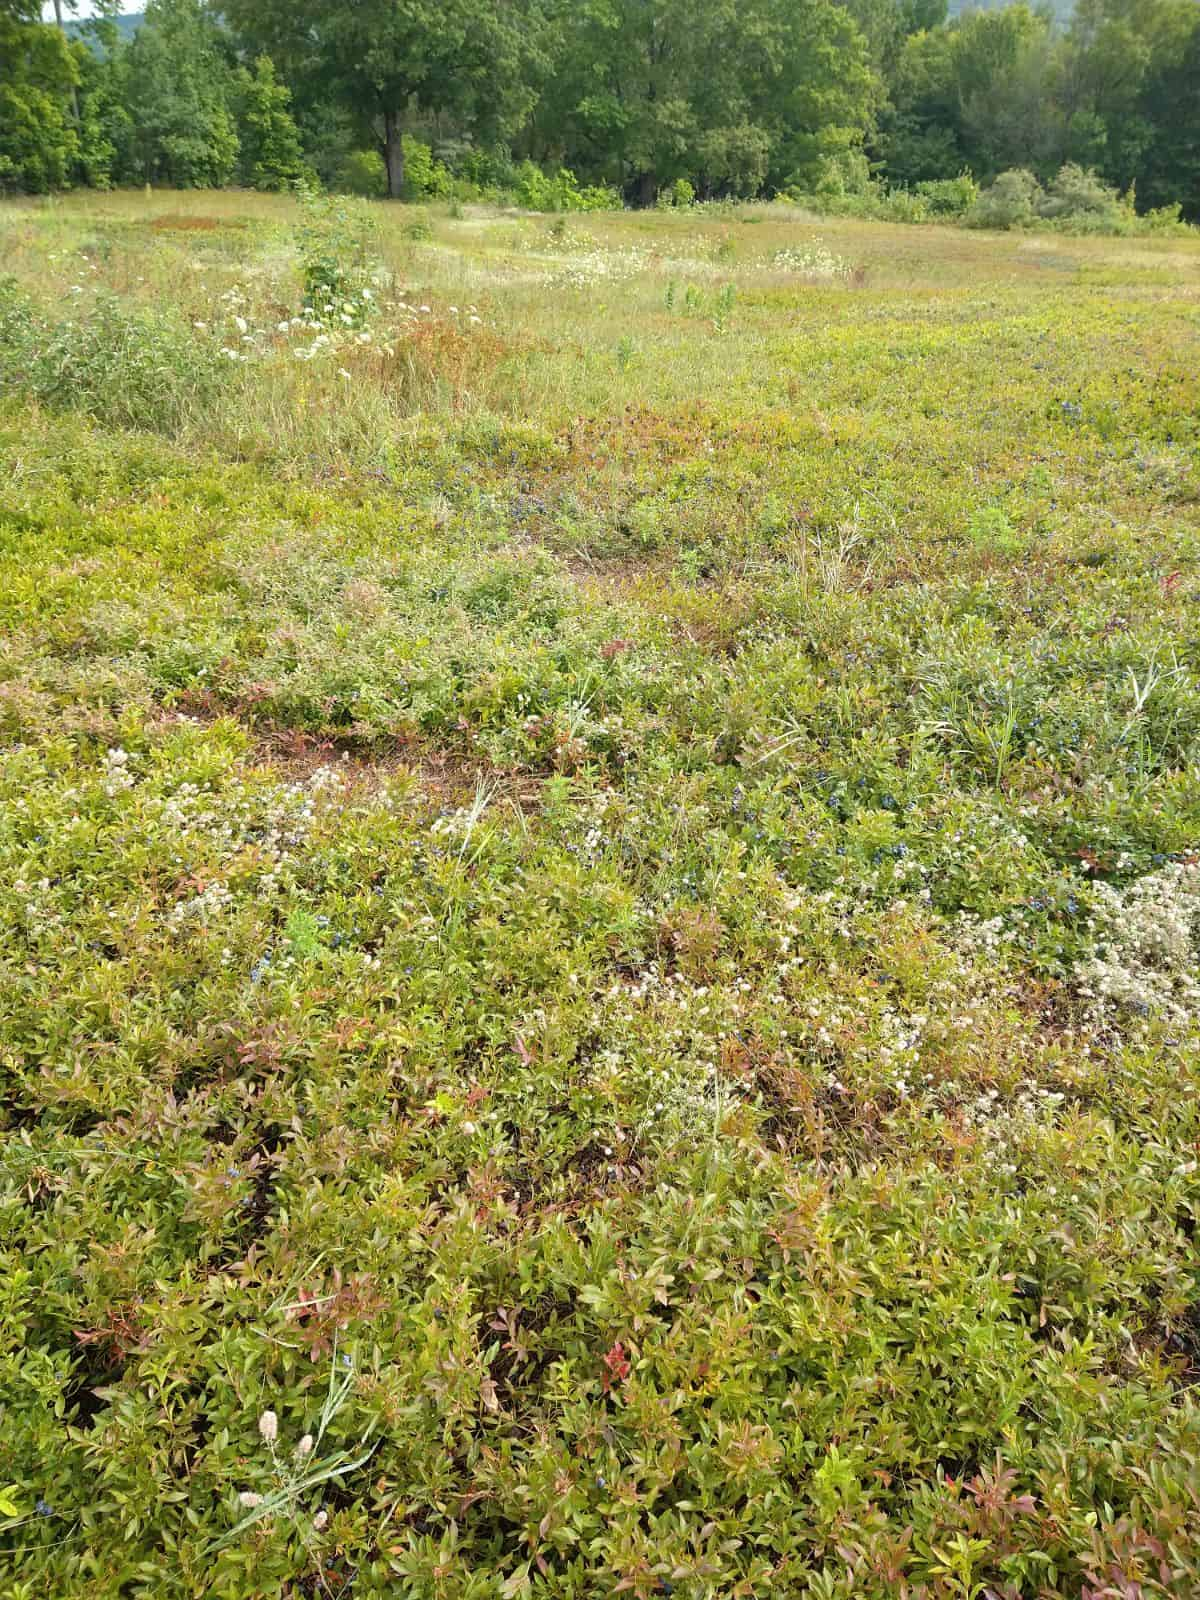 A large field with some trees in the background. The field is full of low wild blueberry plants with some weeds intermixed.